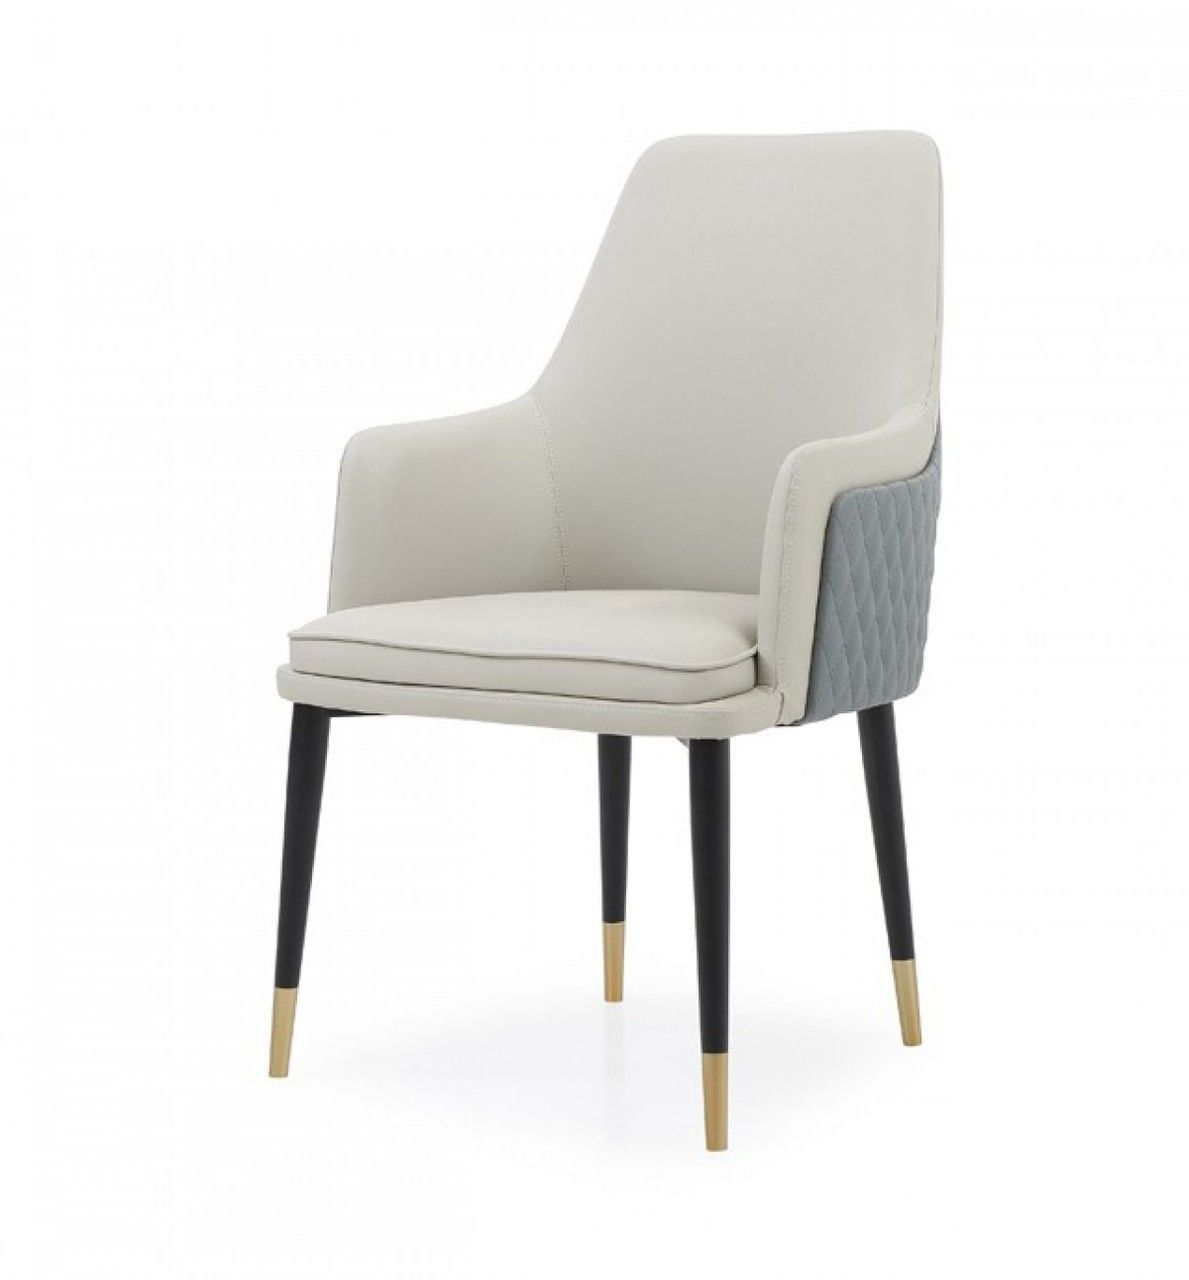 Modrest Duval Modern White Grey Dining Chair Outdoor Dining